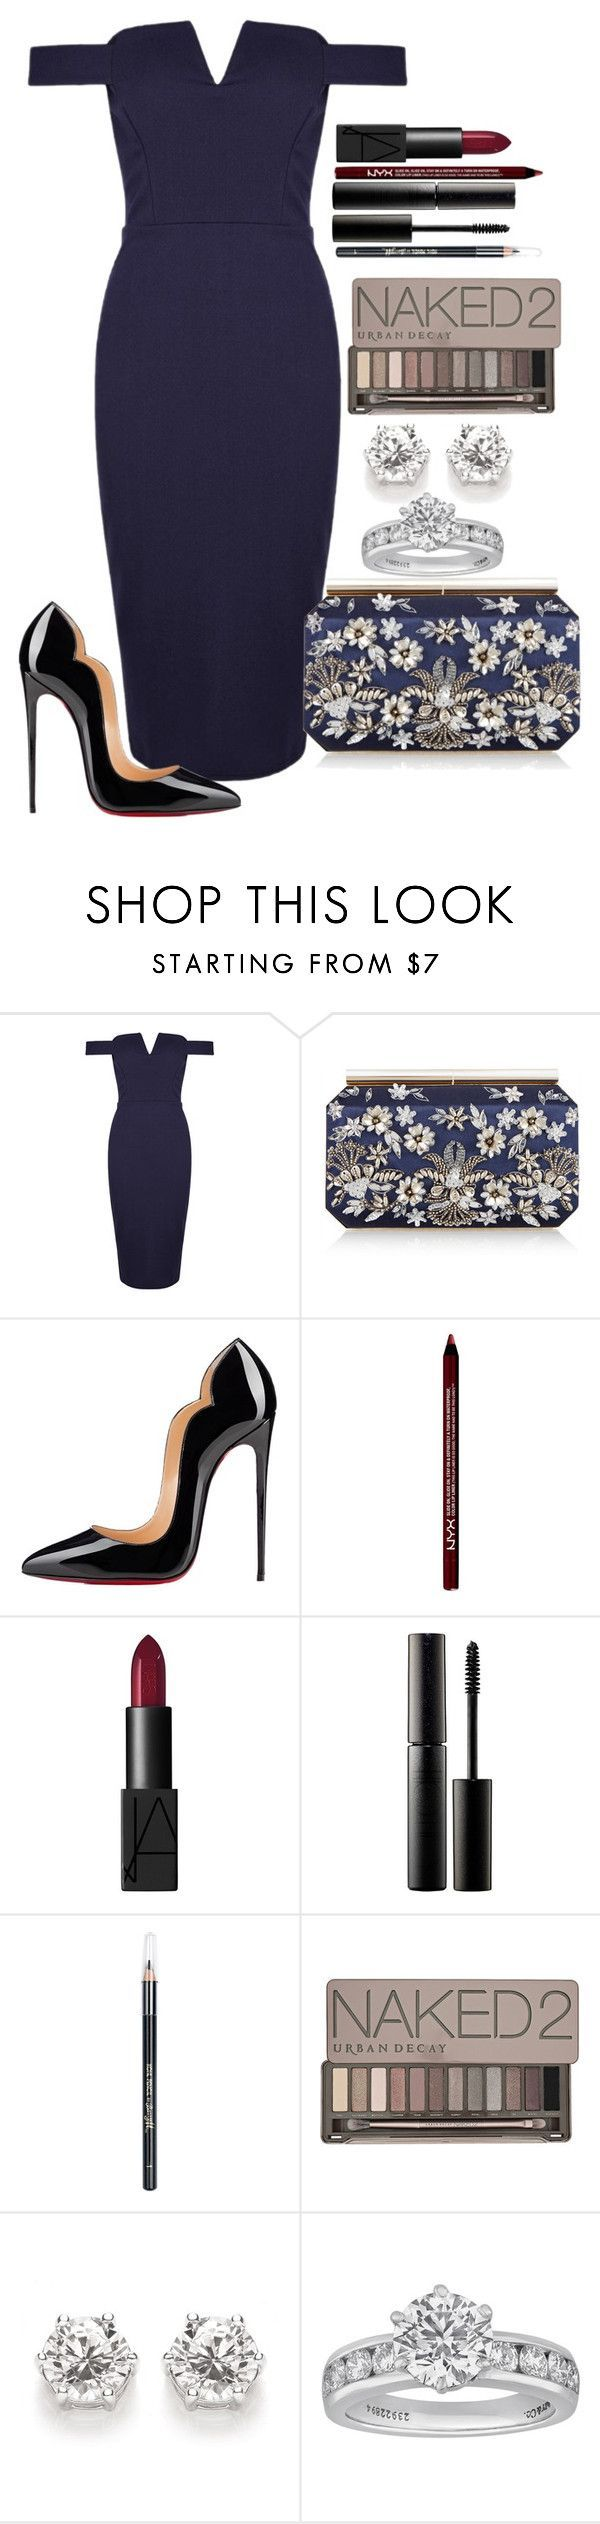 """Untitled #1267"" by fabianarveloc on Polyvore featuring Oscar de la Renta, Christian Louboutin, NARS Cosmetics, Surratt, Barry M, Urban Decay and Tiffany & Co."